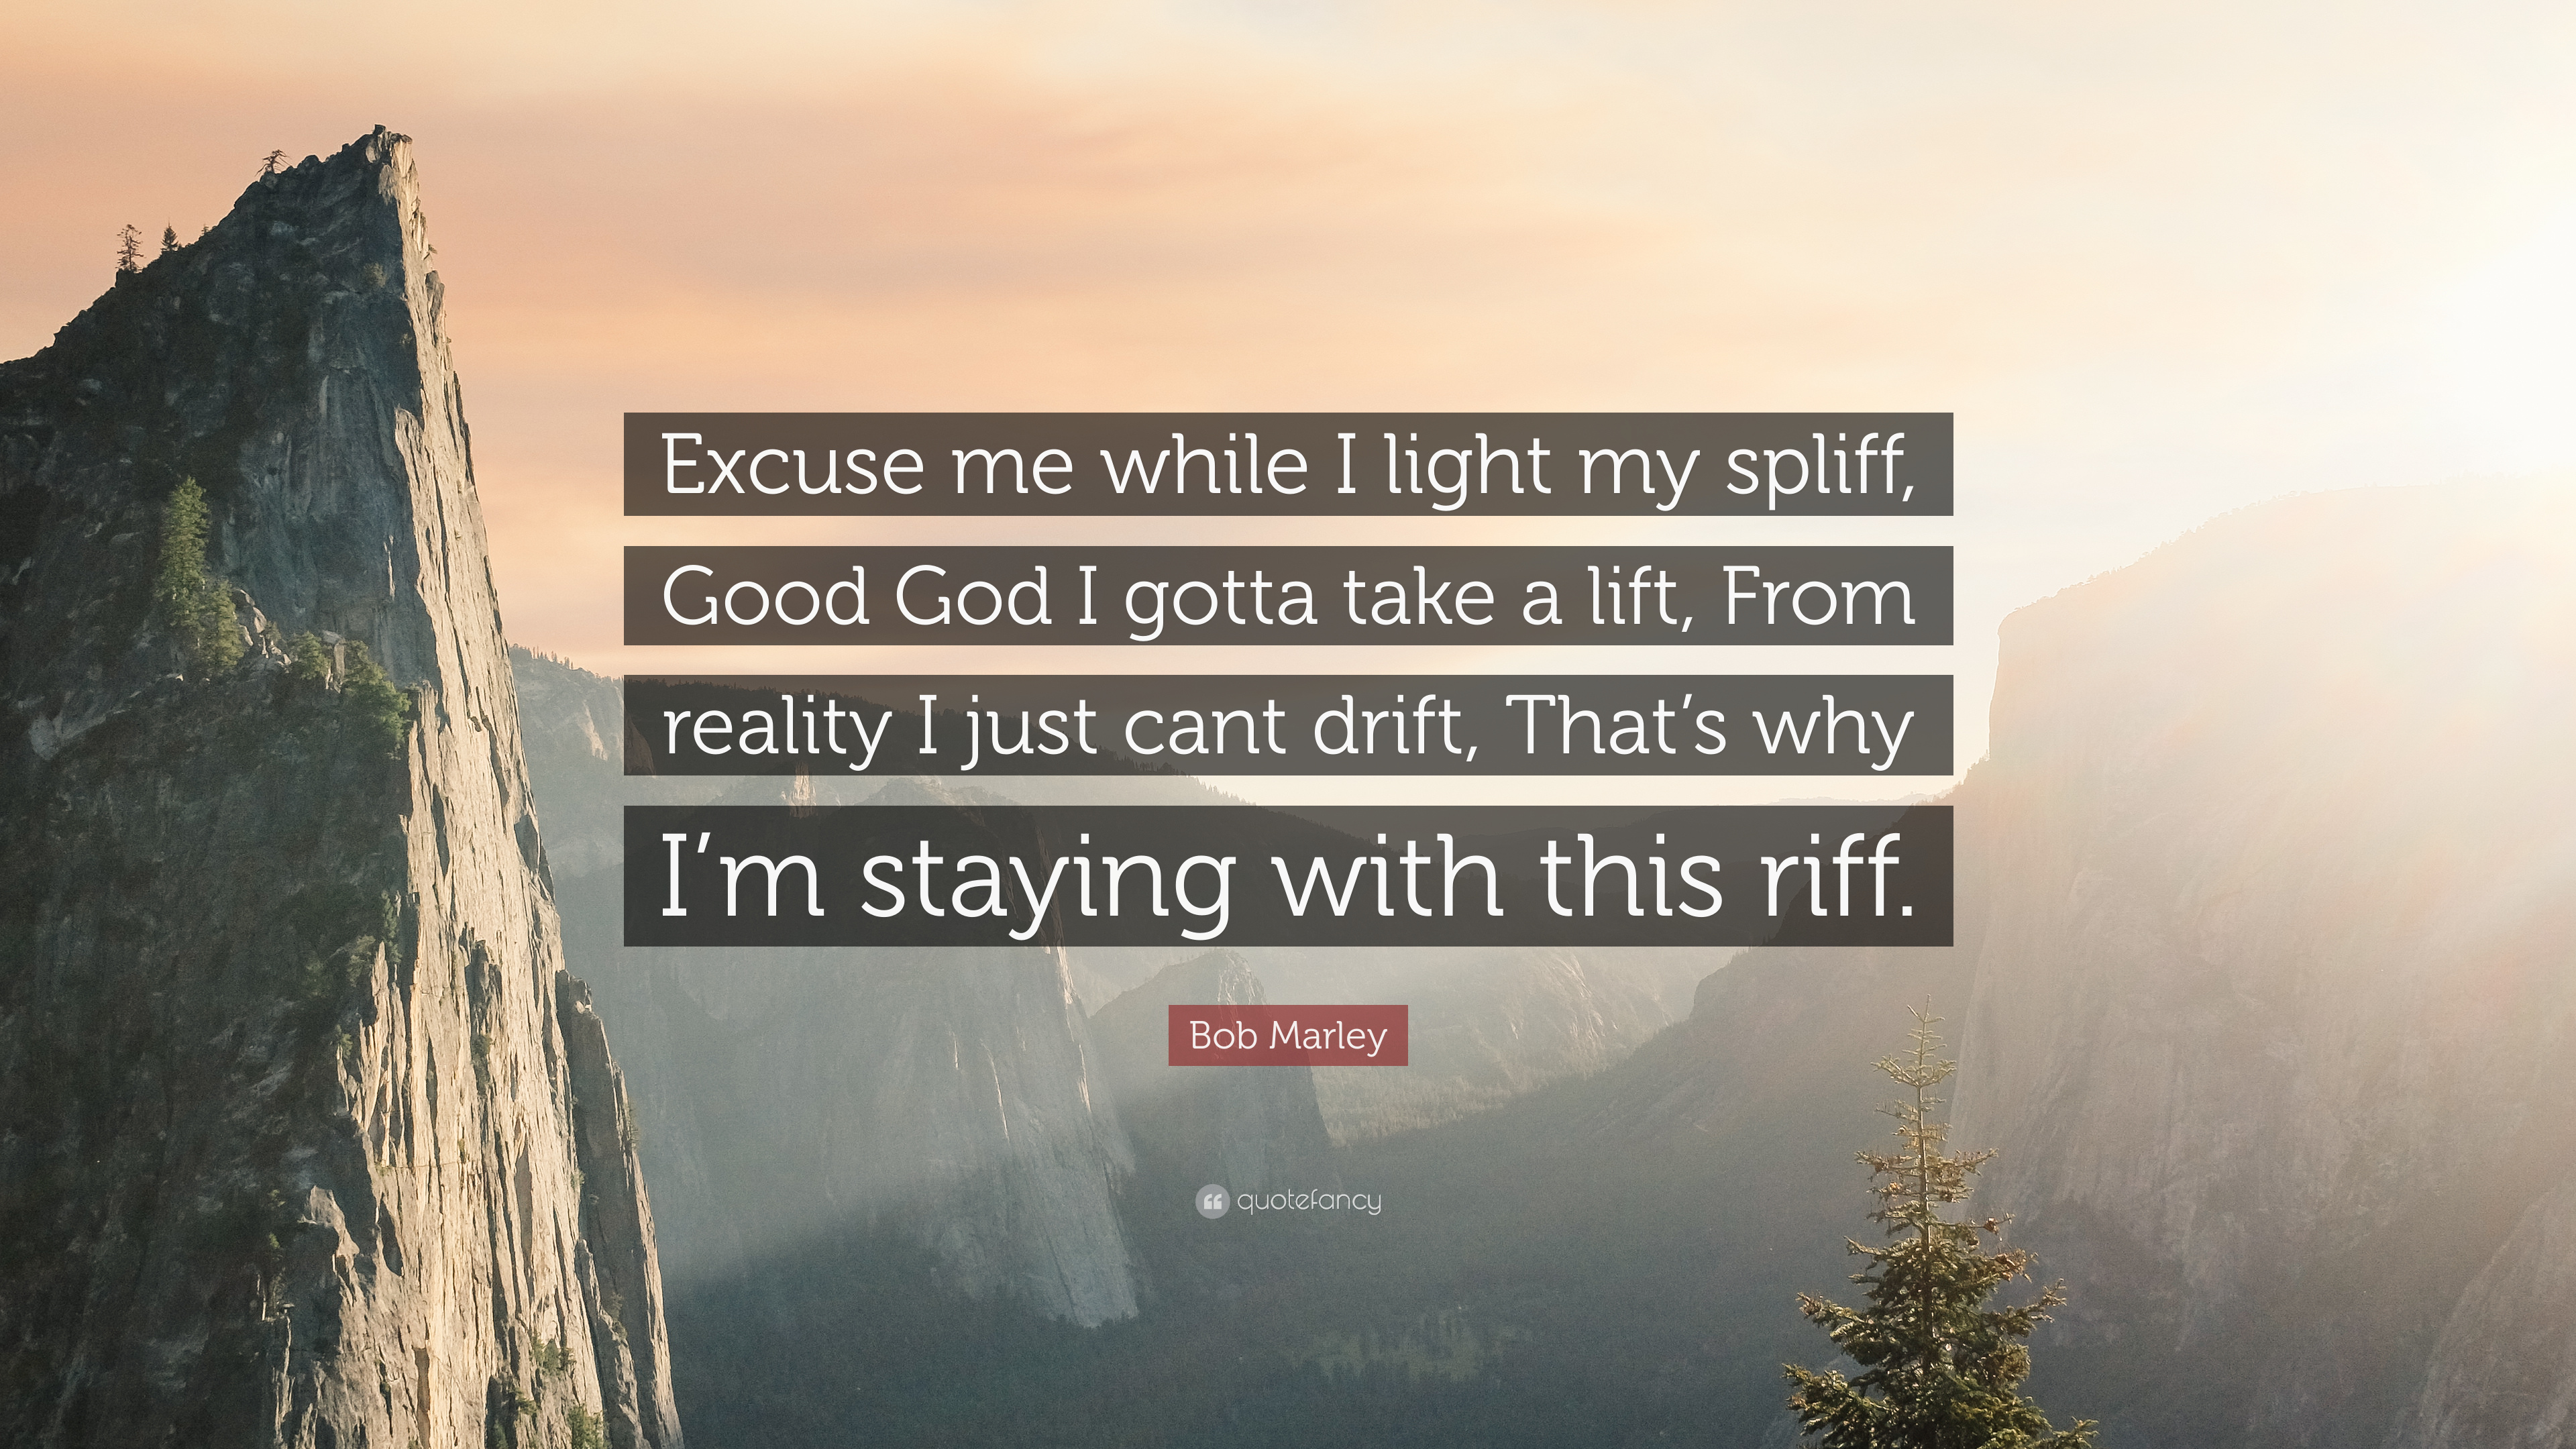 from reality i just can drift